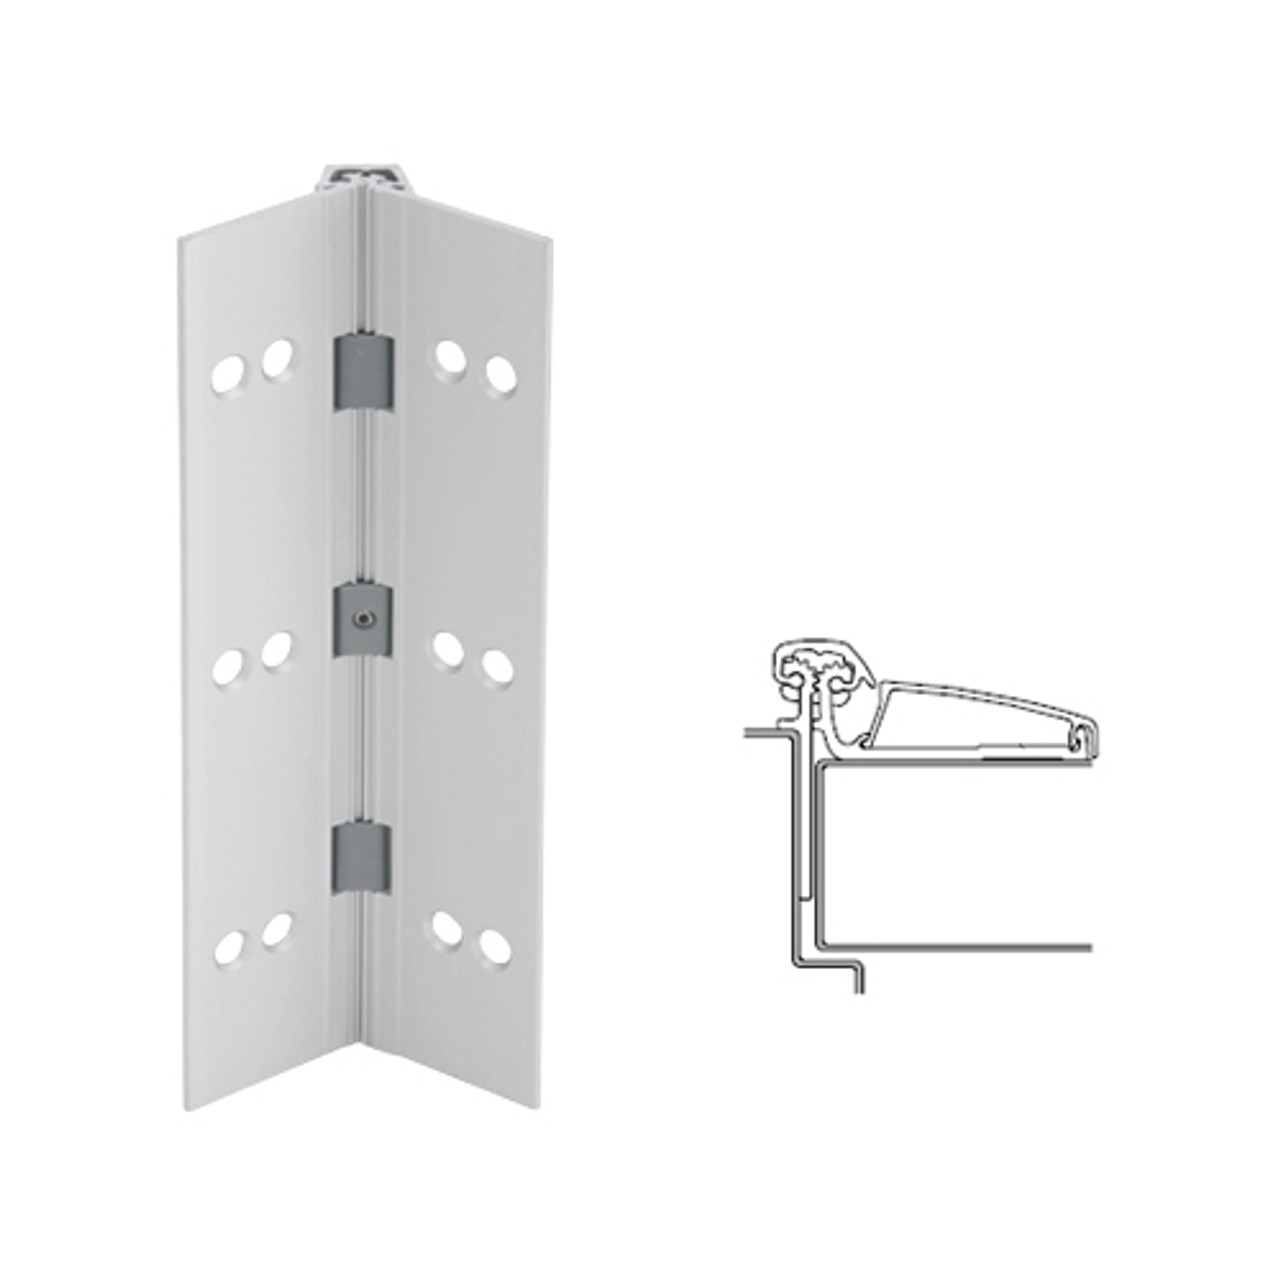 045XY-US28-85-TF IVES Adjustable Half Surface Continuous Geared Hinges with Thread Forming Screws in Satin Aluminum